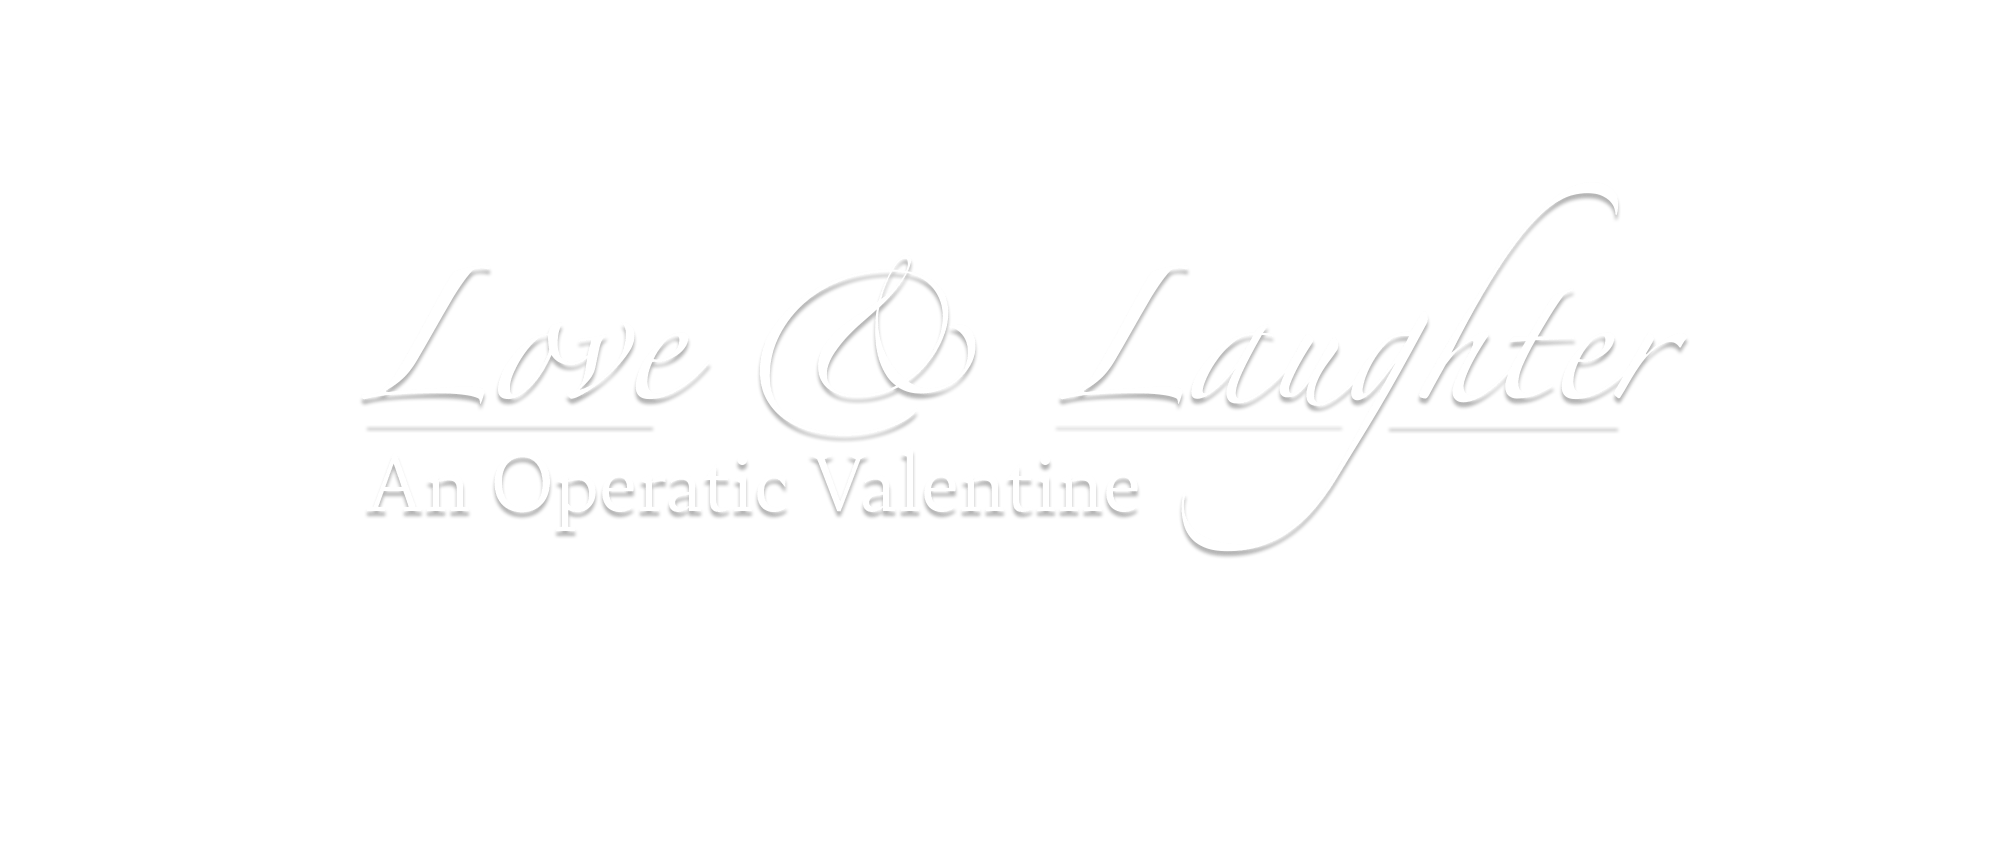 Love & Laughter—An Operatic Valentine